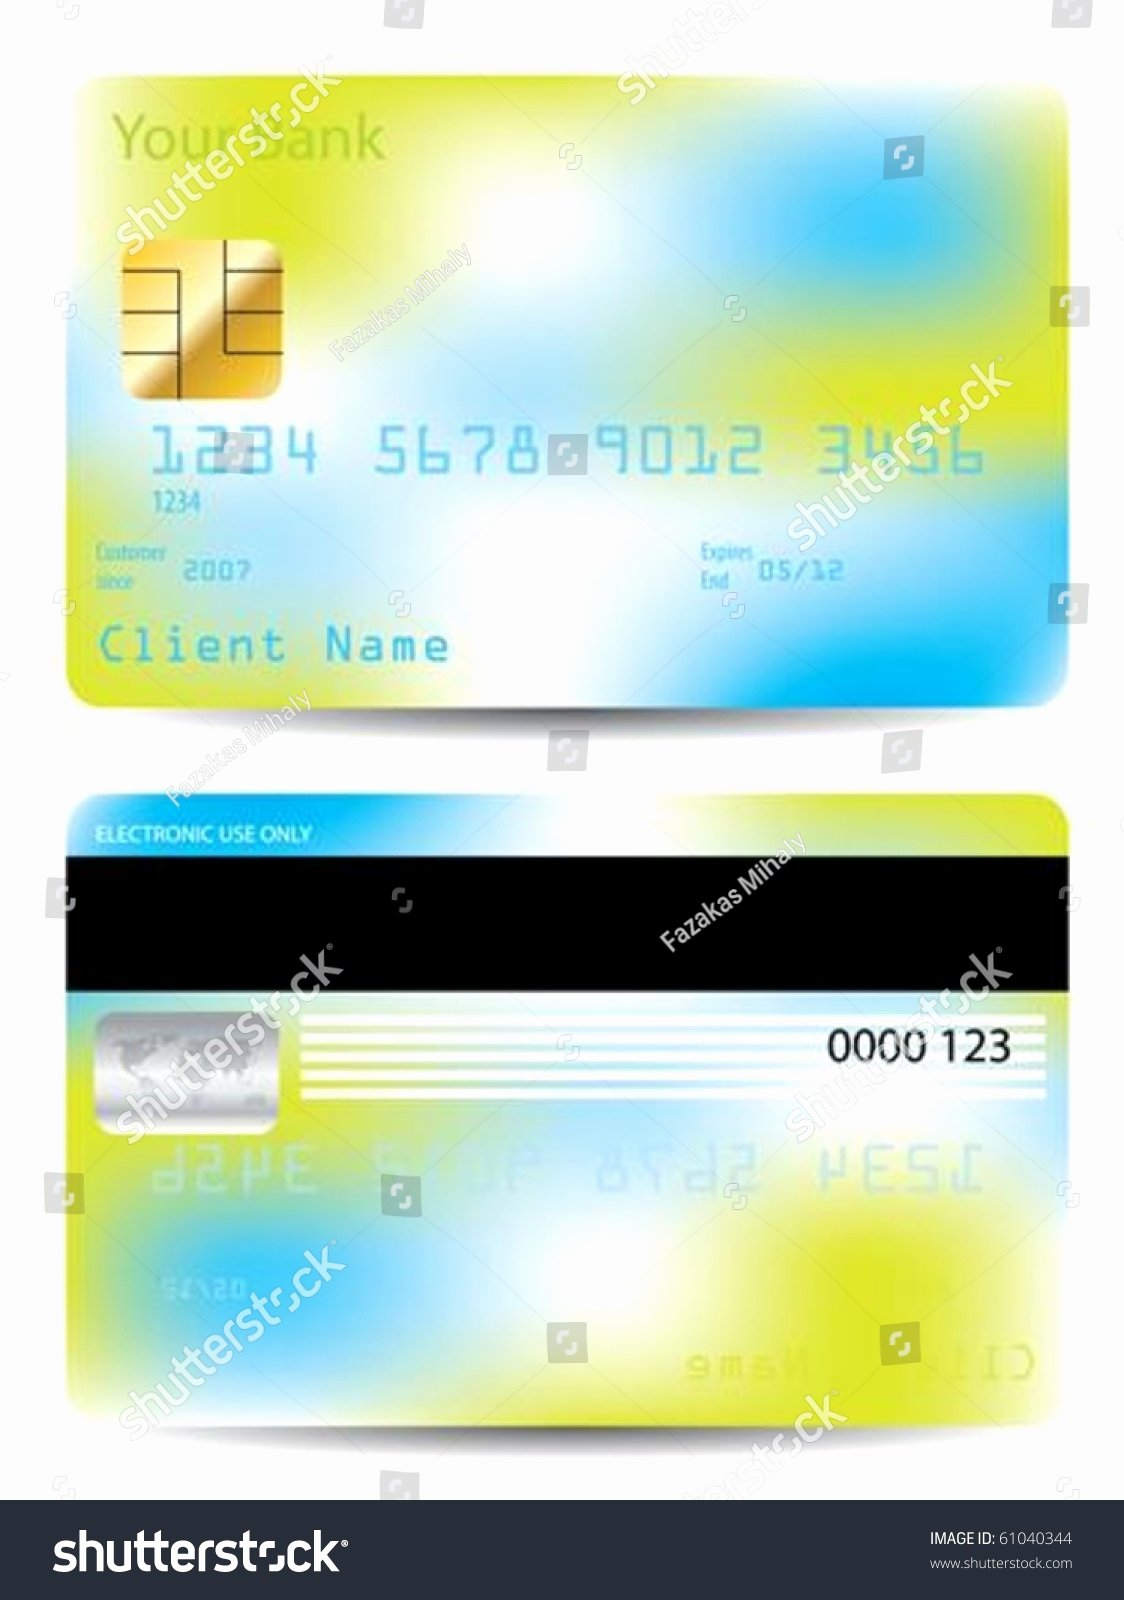 Credit Card Design Template New Colorful Credit Card Design Template Stock Vector